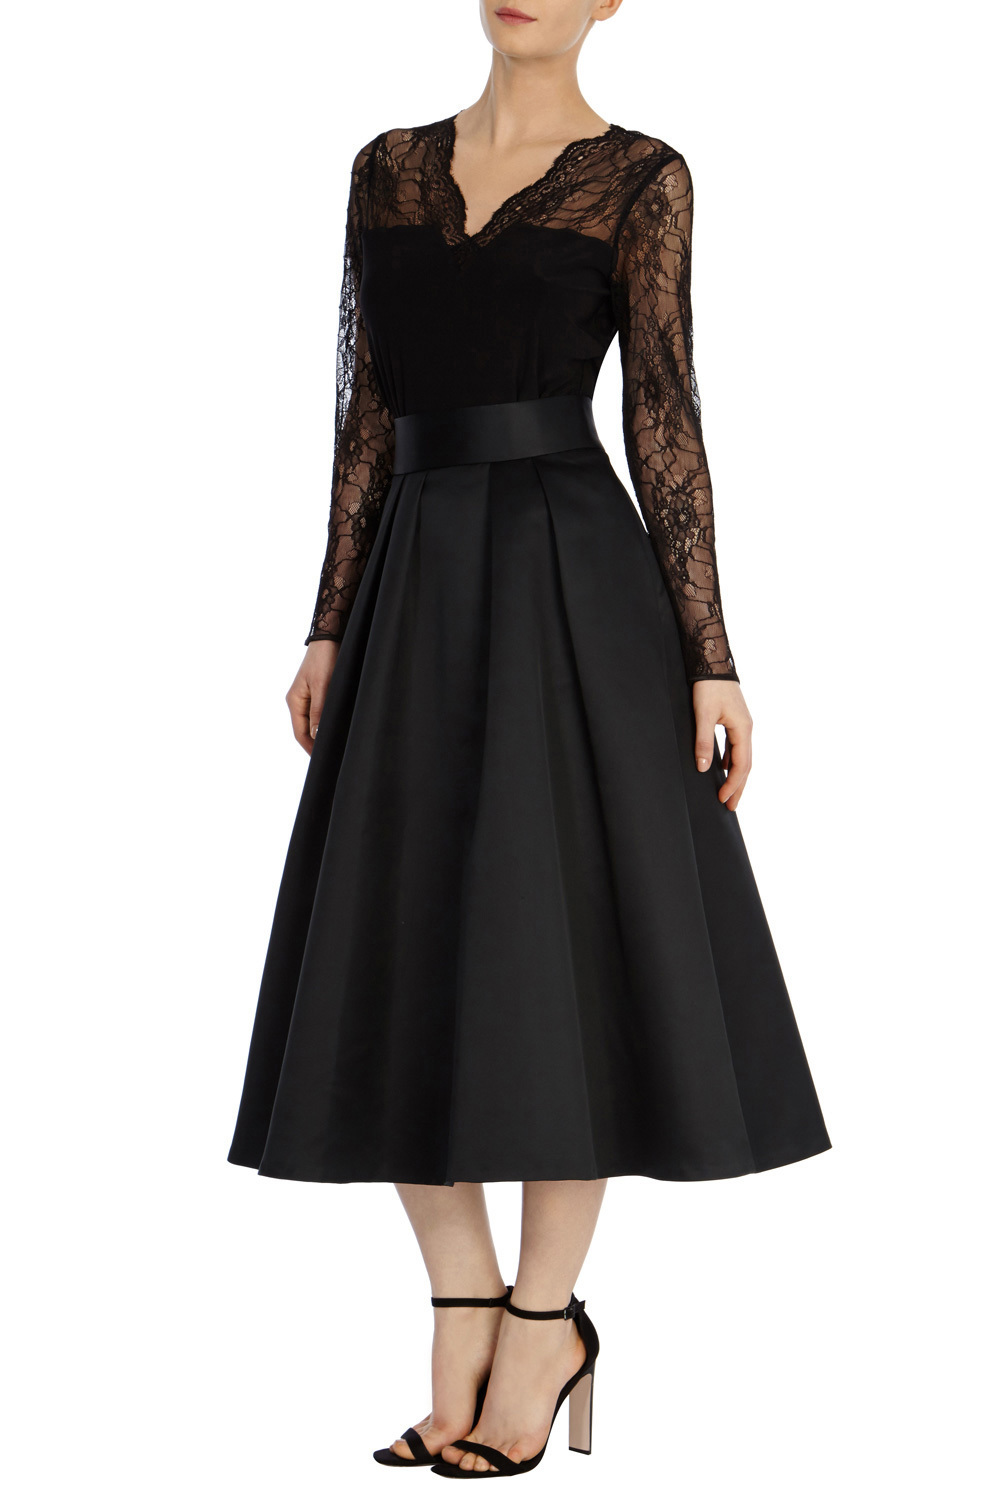 Meslita Skirt - length: calf length; pattern: plain; style: full/prom skirt; fit: loose/voluminous; waist: high rise; predominant colour: black; fibres: silk - mix; occasions: occasion; hip detail: subtle/flattering hip detail; pattern type: fabric; texture group: woven light midweight; season: s/s 2016; wardrobe: event